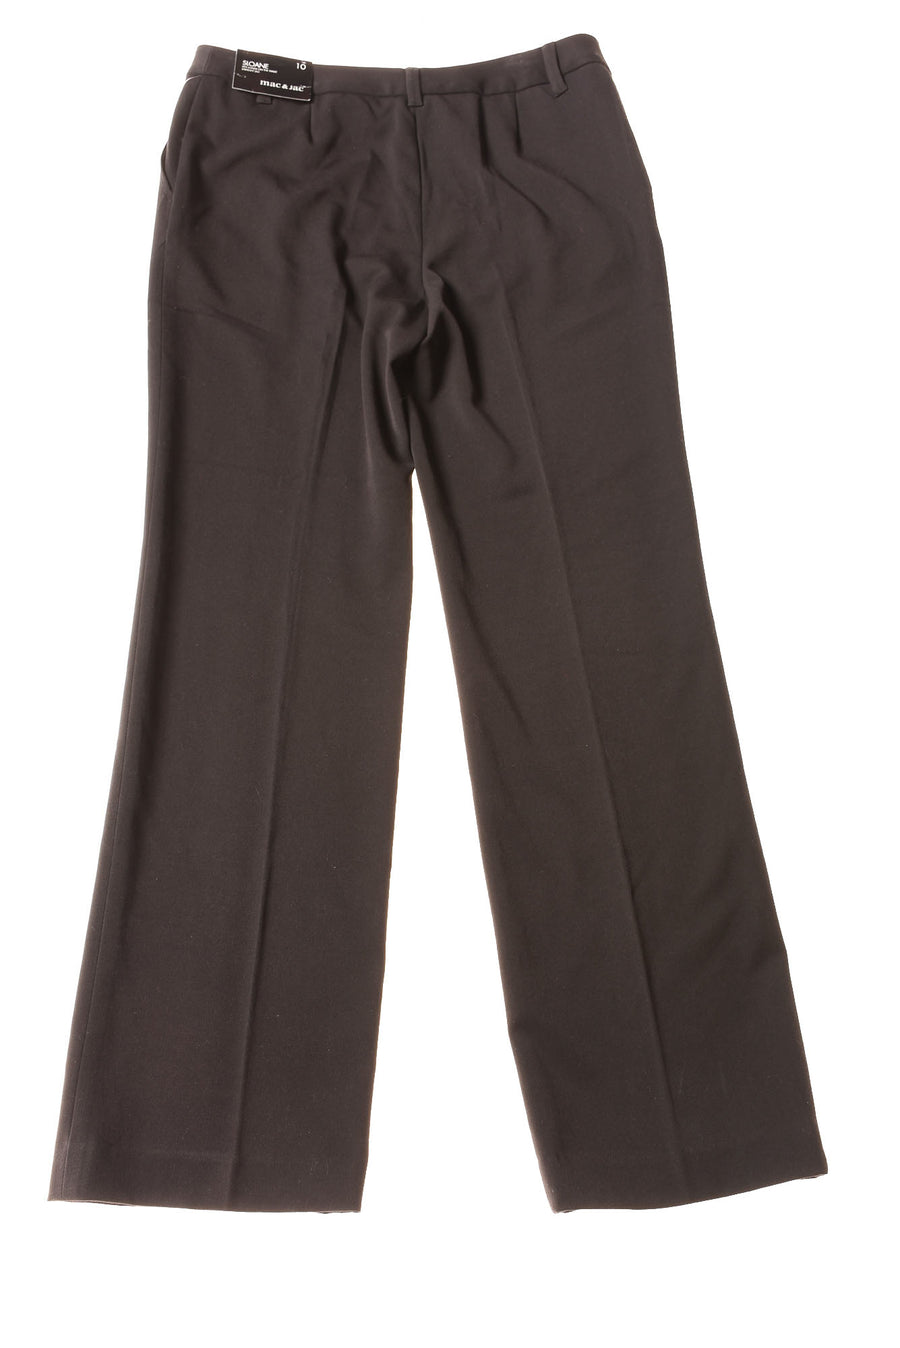 NEW Mac & Jac Women's Slacks 10 Black